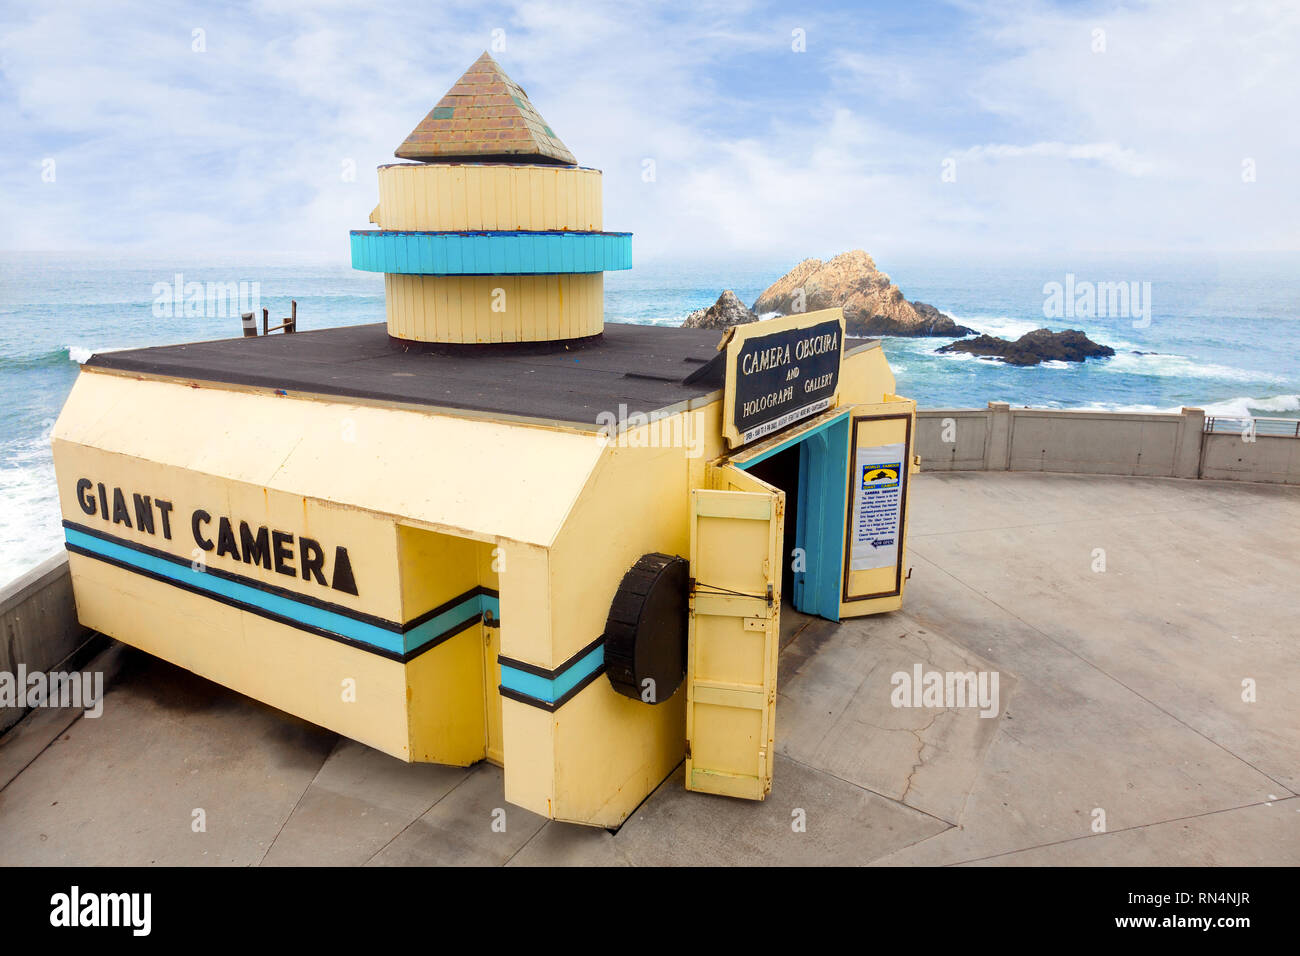 SAN FRANCISCO-The Giant Camera overlooks the sea at Ocean Beach. A tourist attraction since 1946, it is on the National Register of Historic Places. - Stock Image